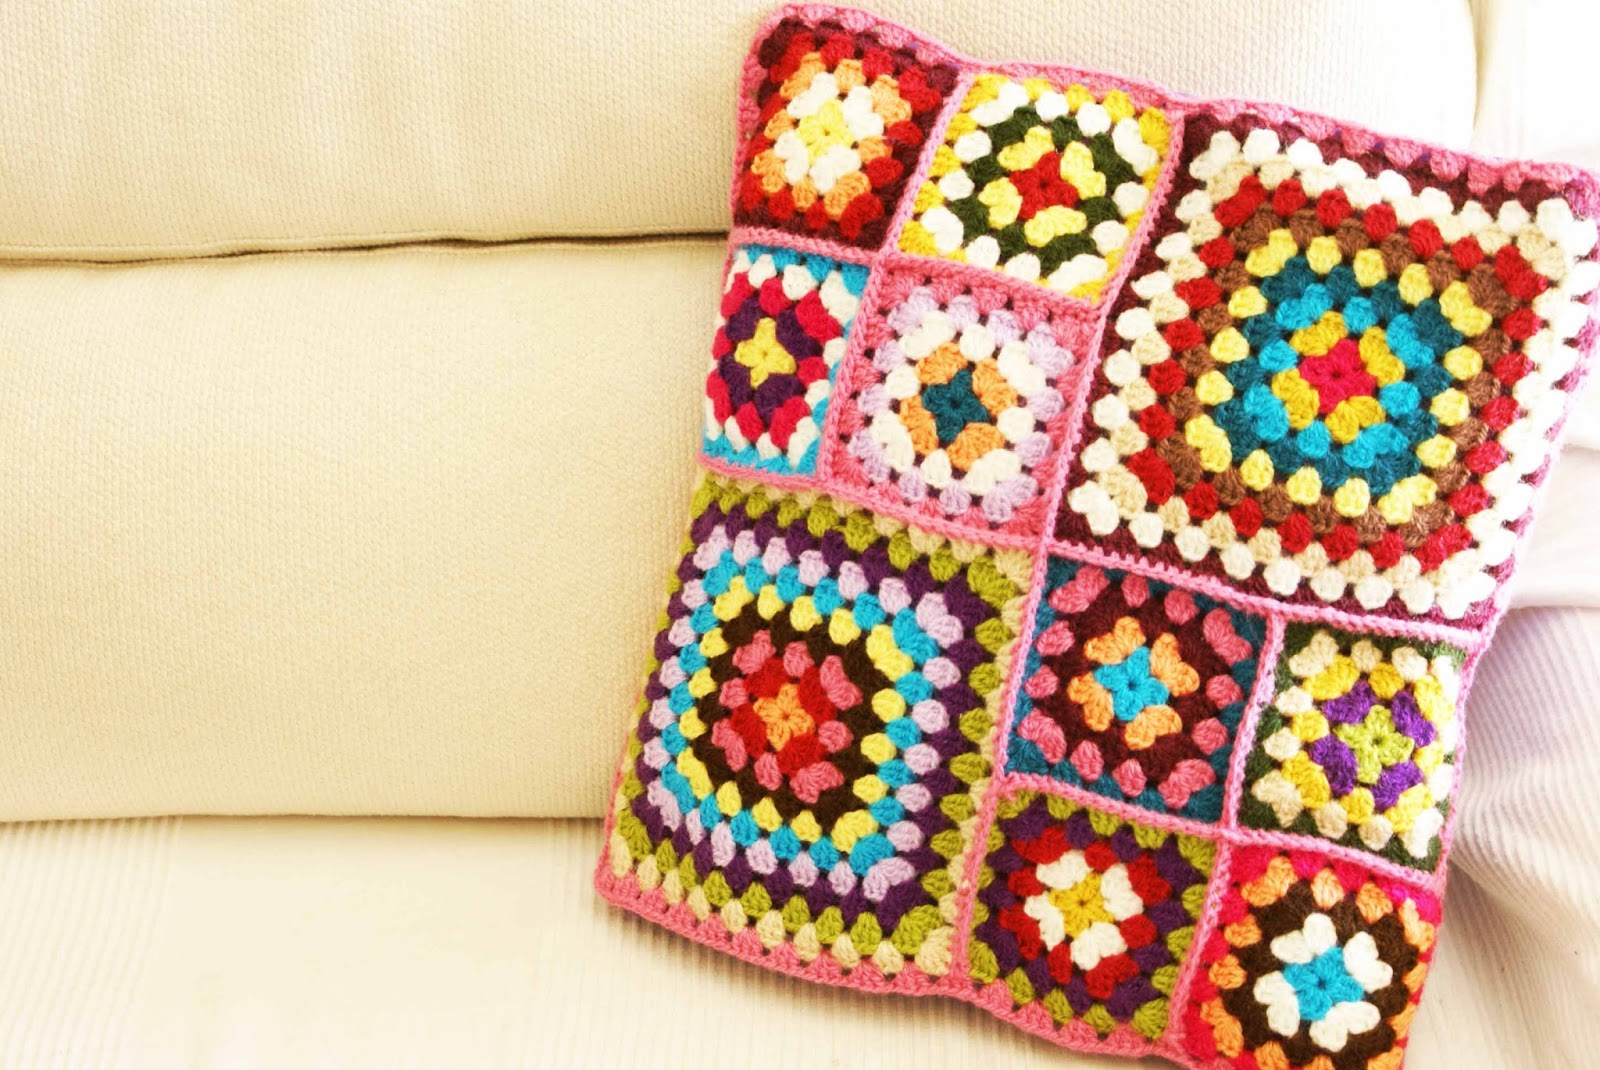 Como Hacer Cojines De Ganchillo Enganxart Crochet And More Cojines Granny Square